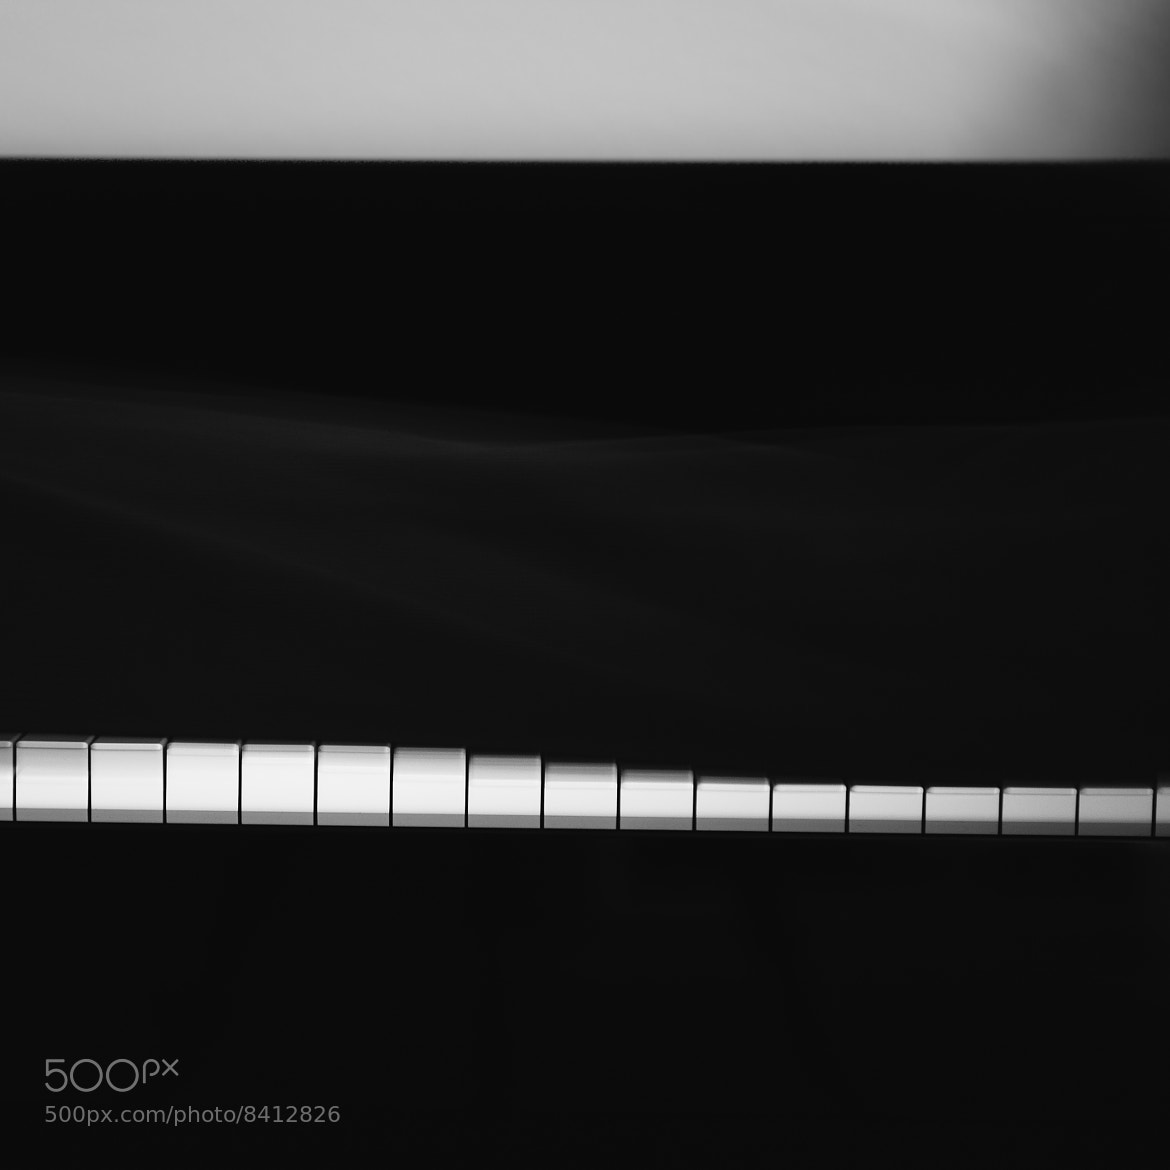 Photograph Who's playing? by Matti Suomalainen on 500px